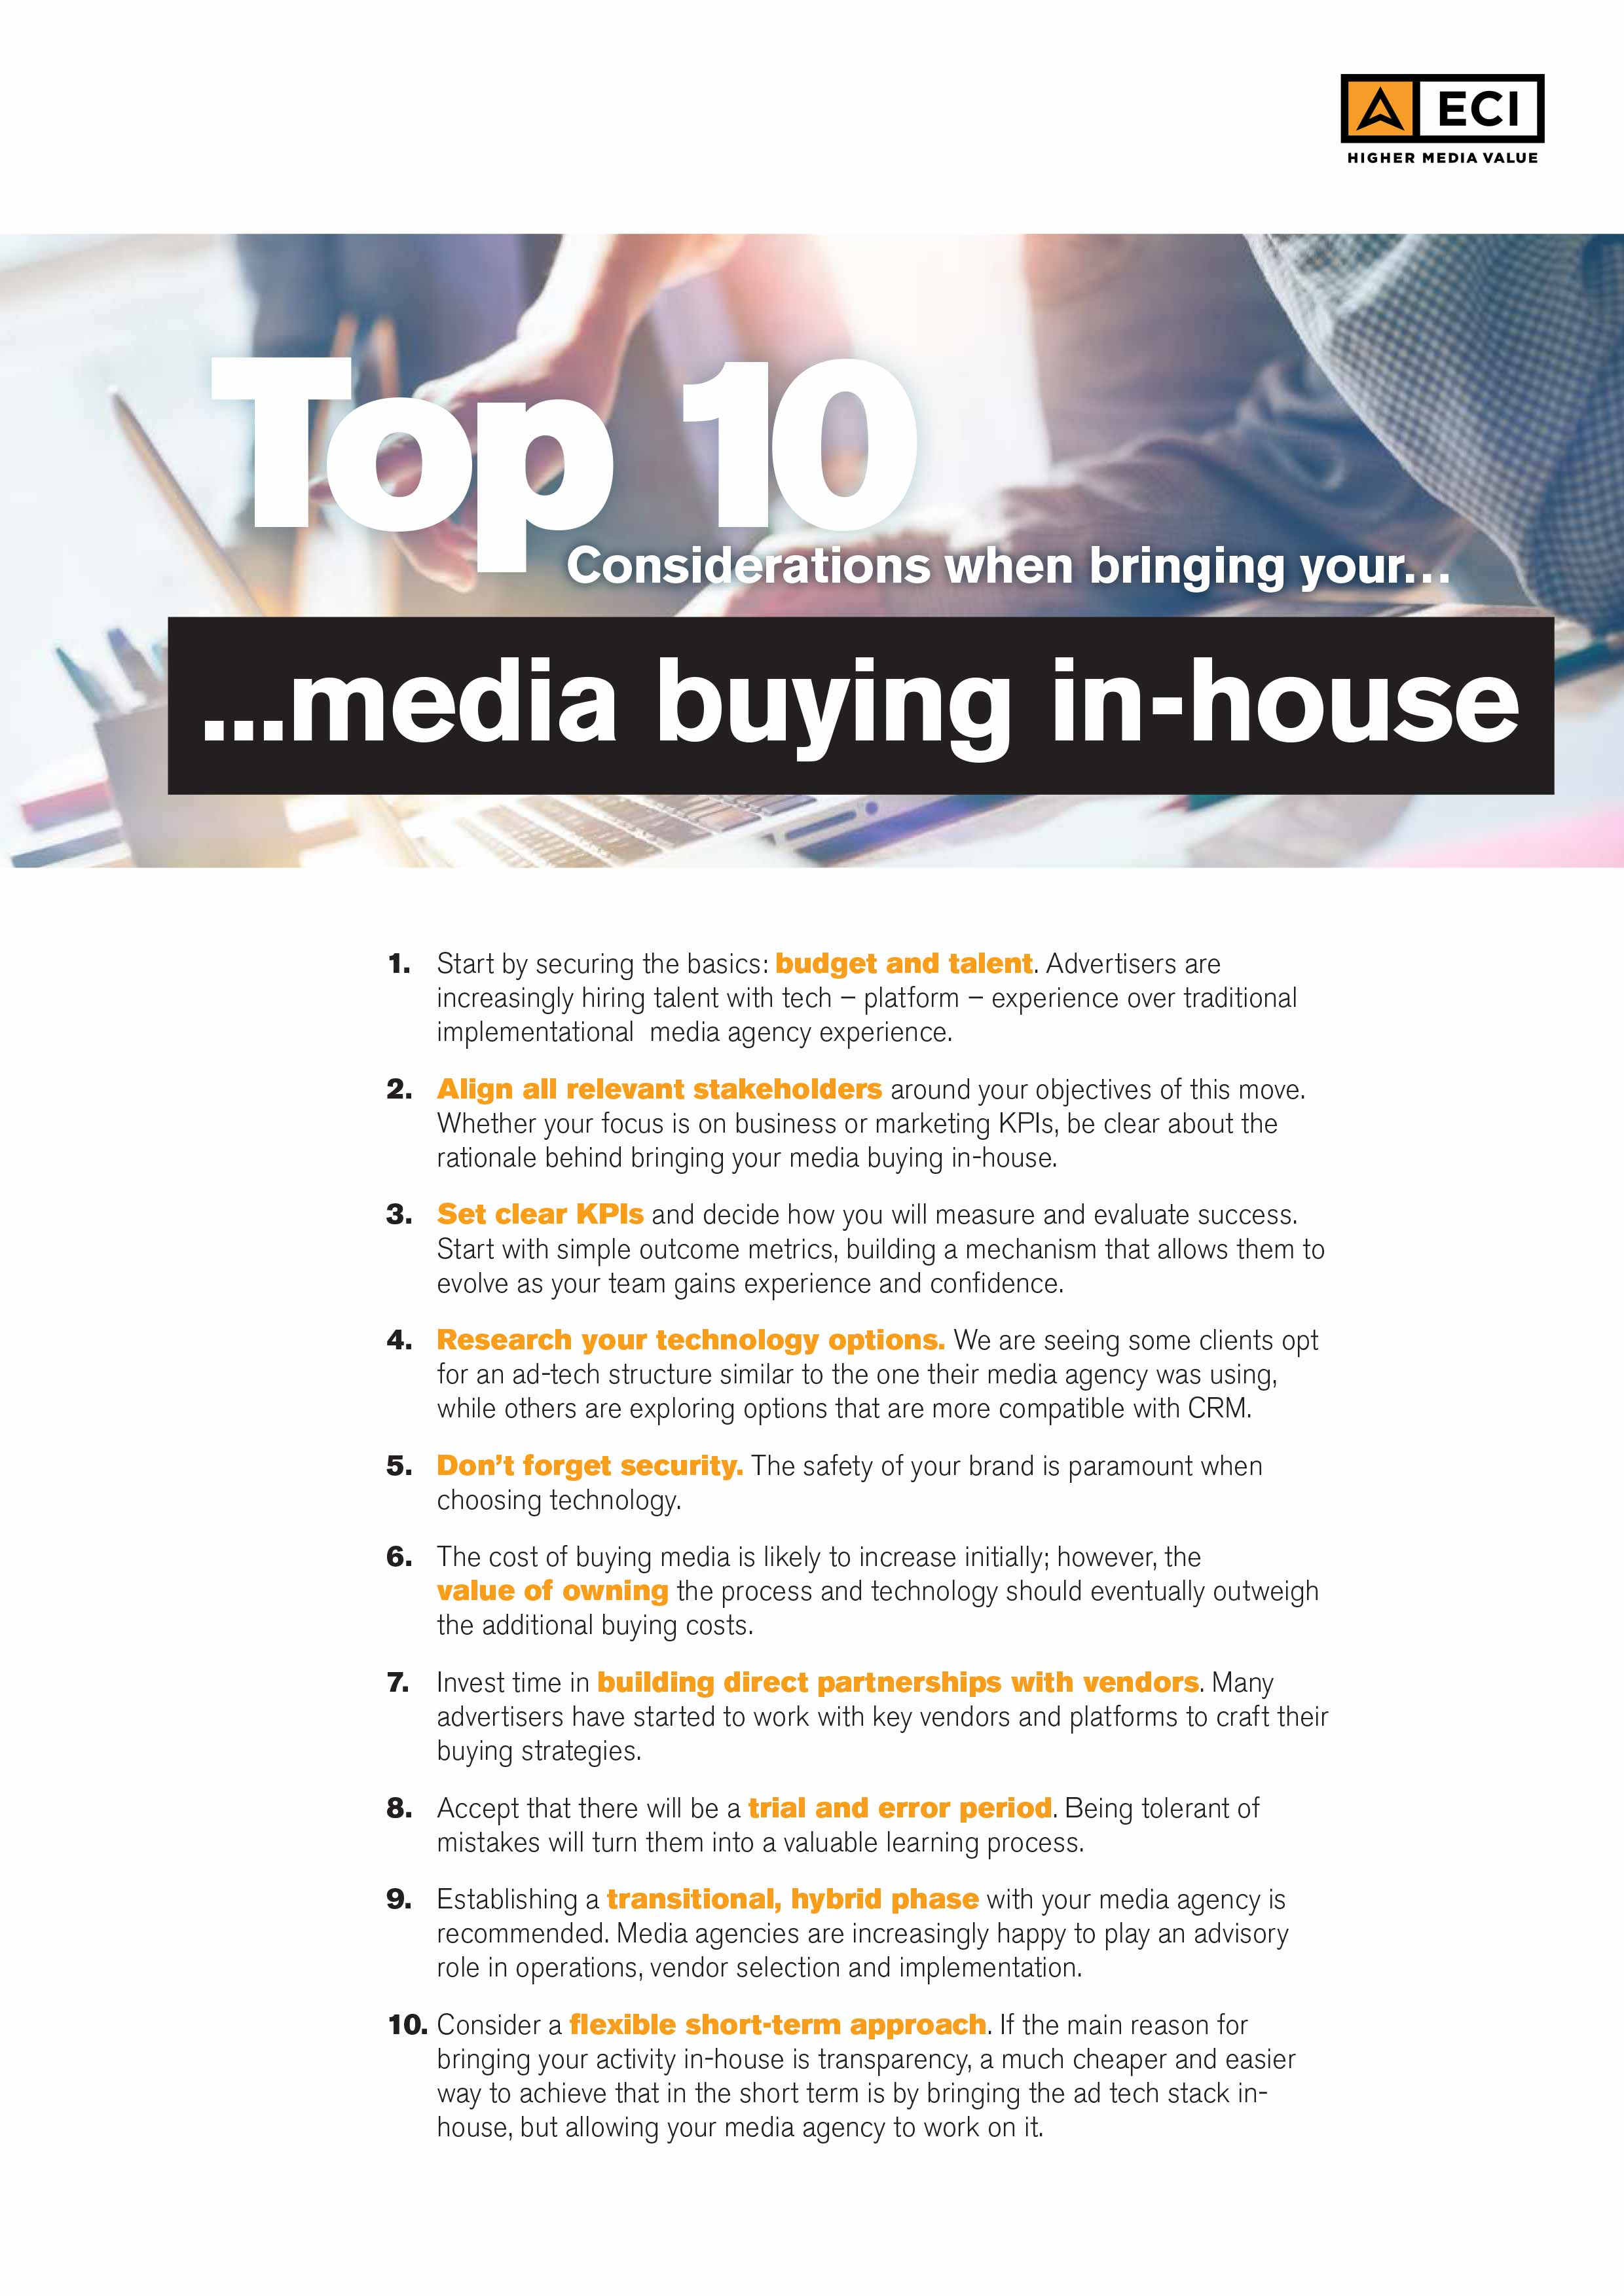 Top 10 | Considerations when bringing your media buying in